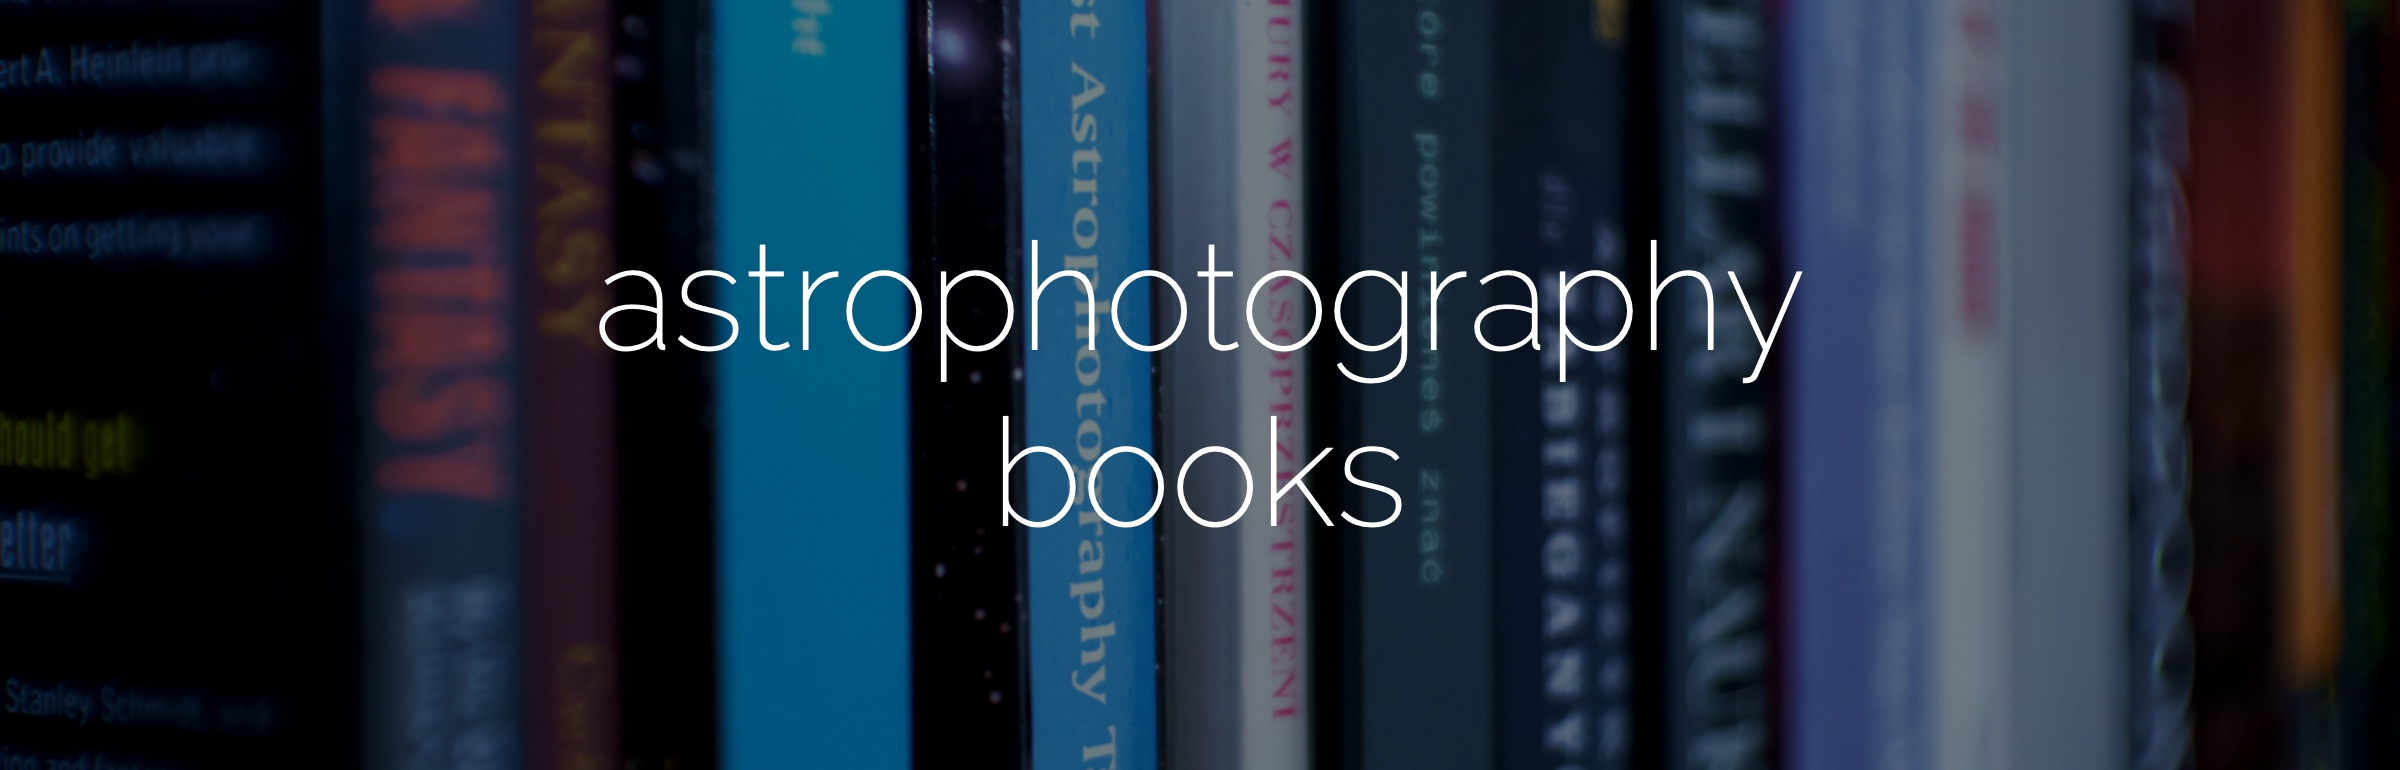 5 Astrophotography Books You Should Have on Your Bookshelf (or in Your Kindle Library)